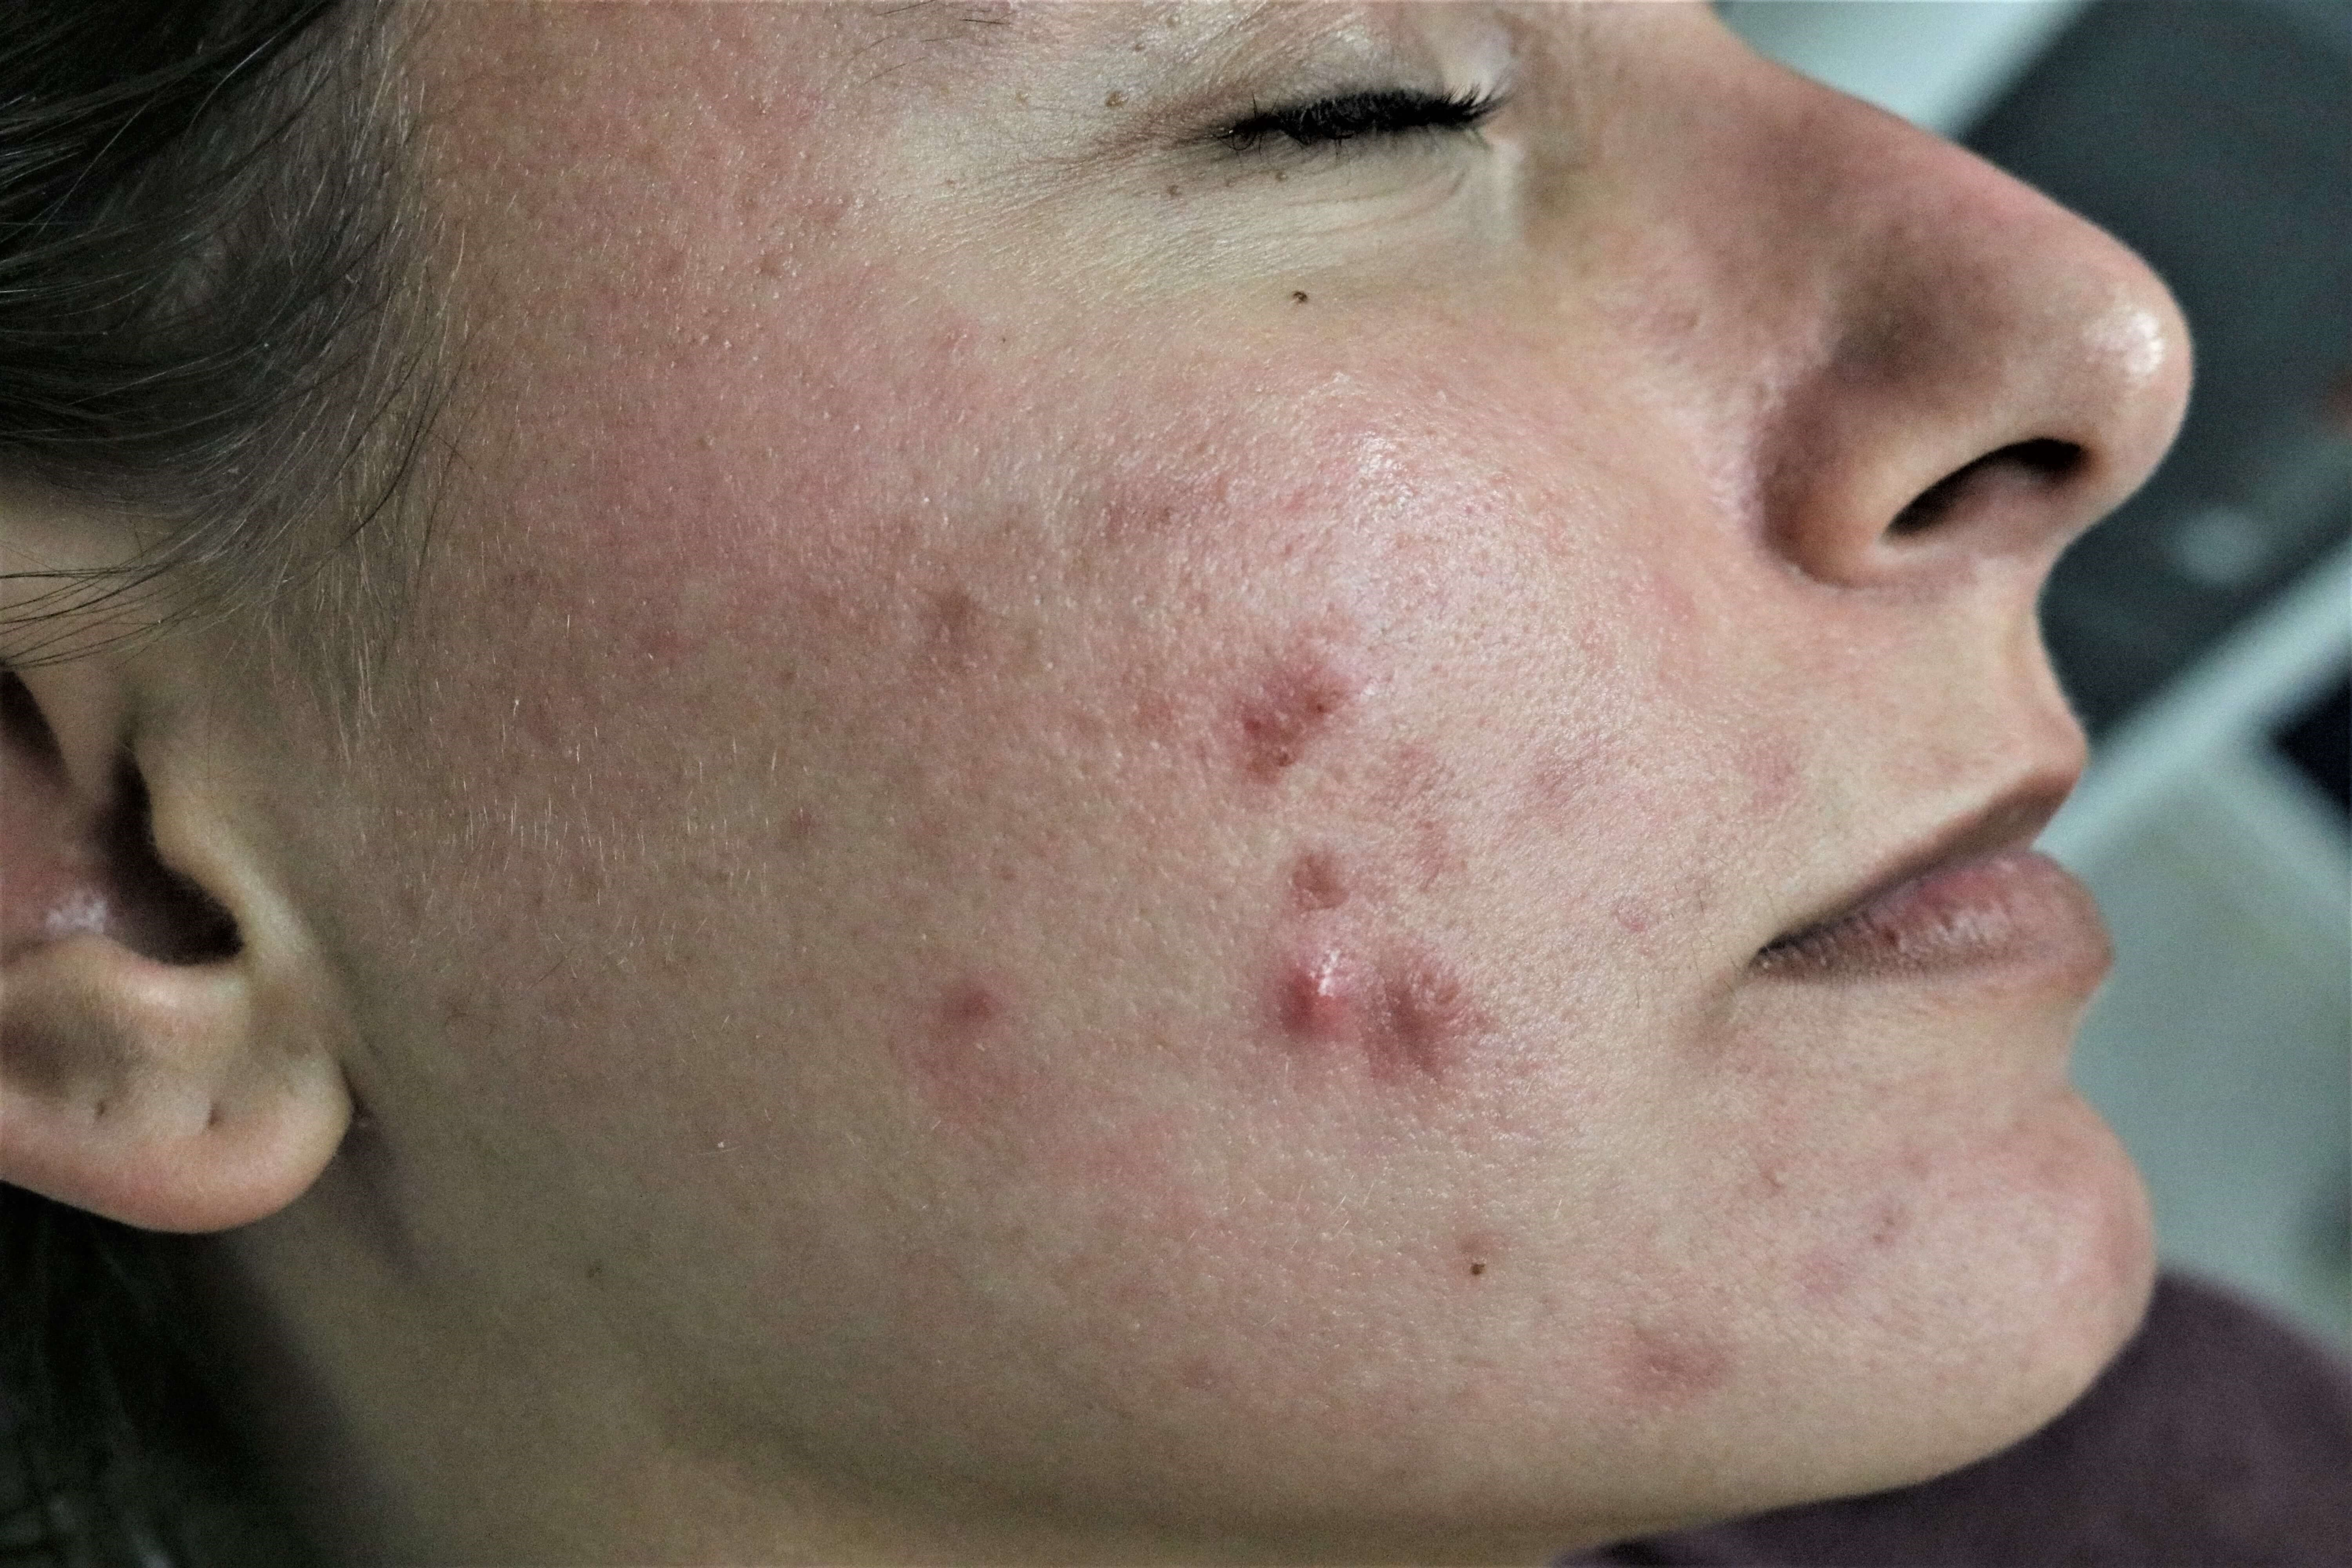 Chemical Peel Before and After Before Chemical Peel